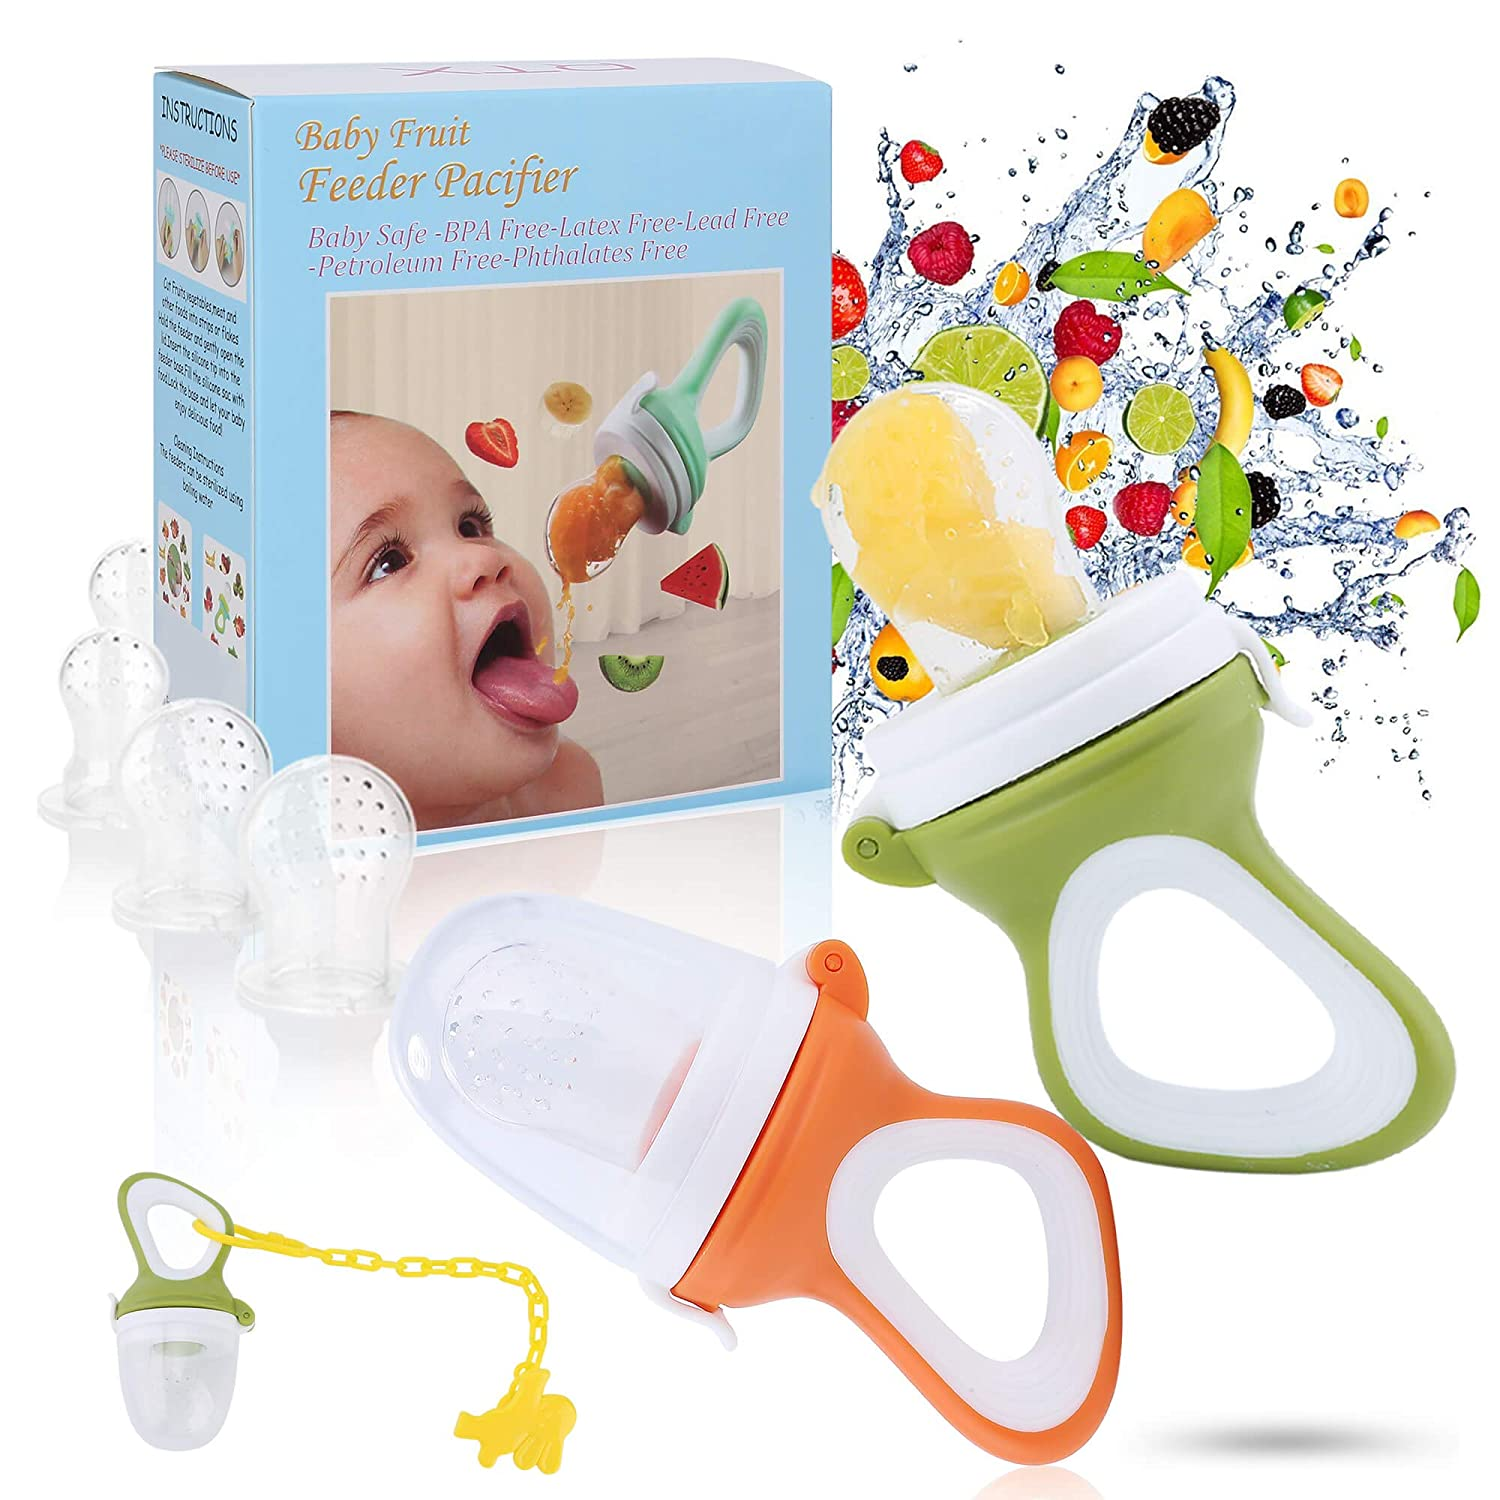 Baby Fruit Feeder Pacifier - Baby Food Feeder Fresh Food Feeder Infant Fruit Teething Toy, 2 Pack with 6 Silicone Sac and 1 Pacifier Clip (Army Green & Orange)